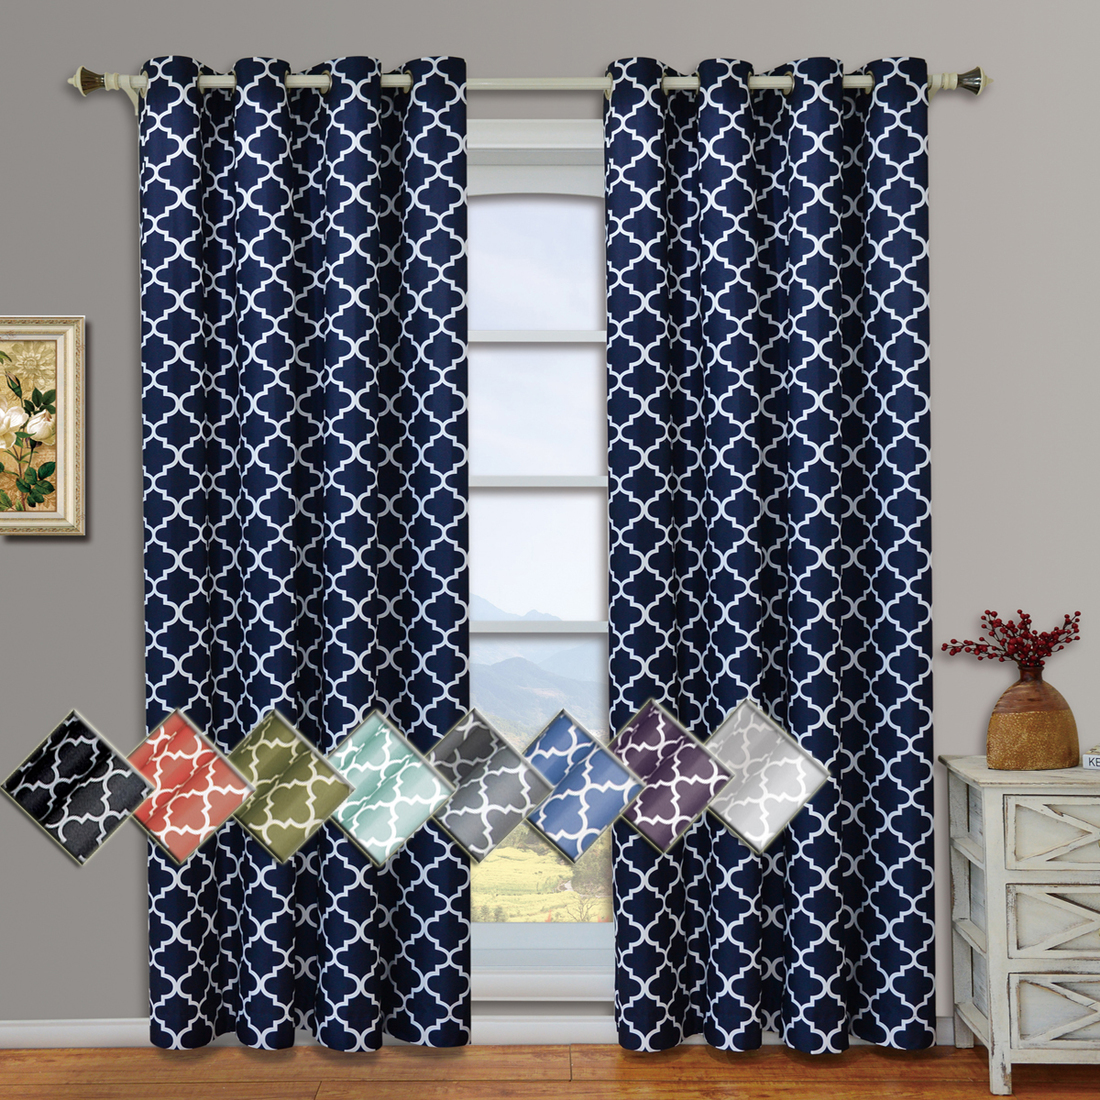 Teen Bedroom Curtains | Ruffle Blackout Curtains | Sheer Polka Dot Curtains